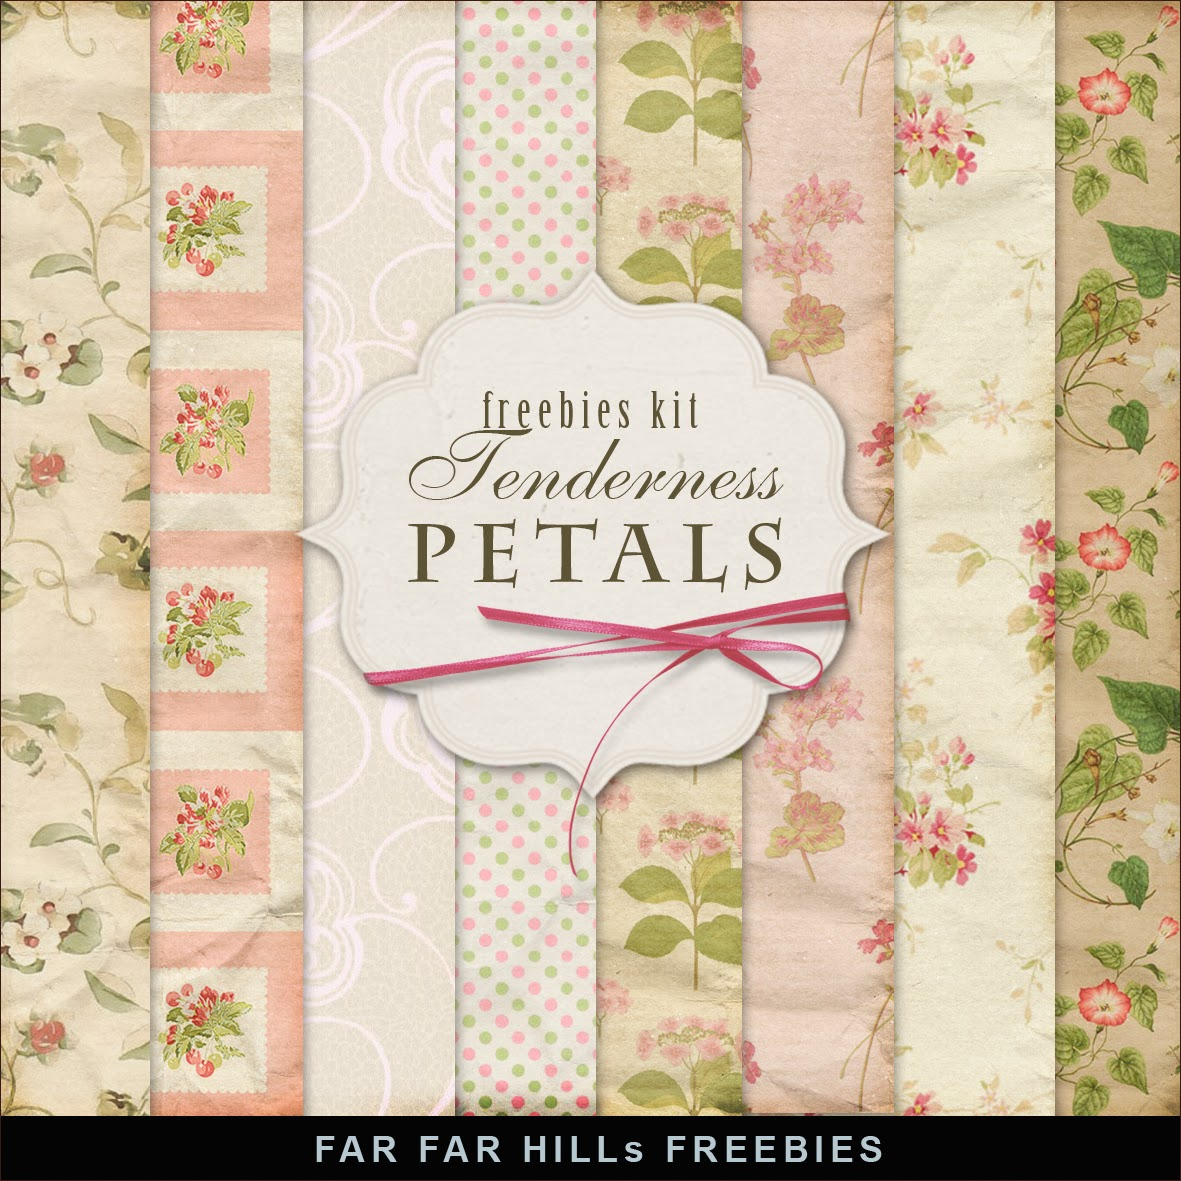 New Freebies Kit of Papers - Tenderness Petals